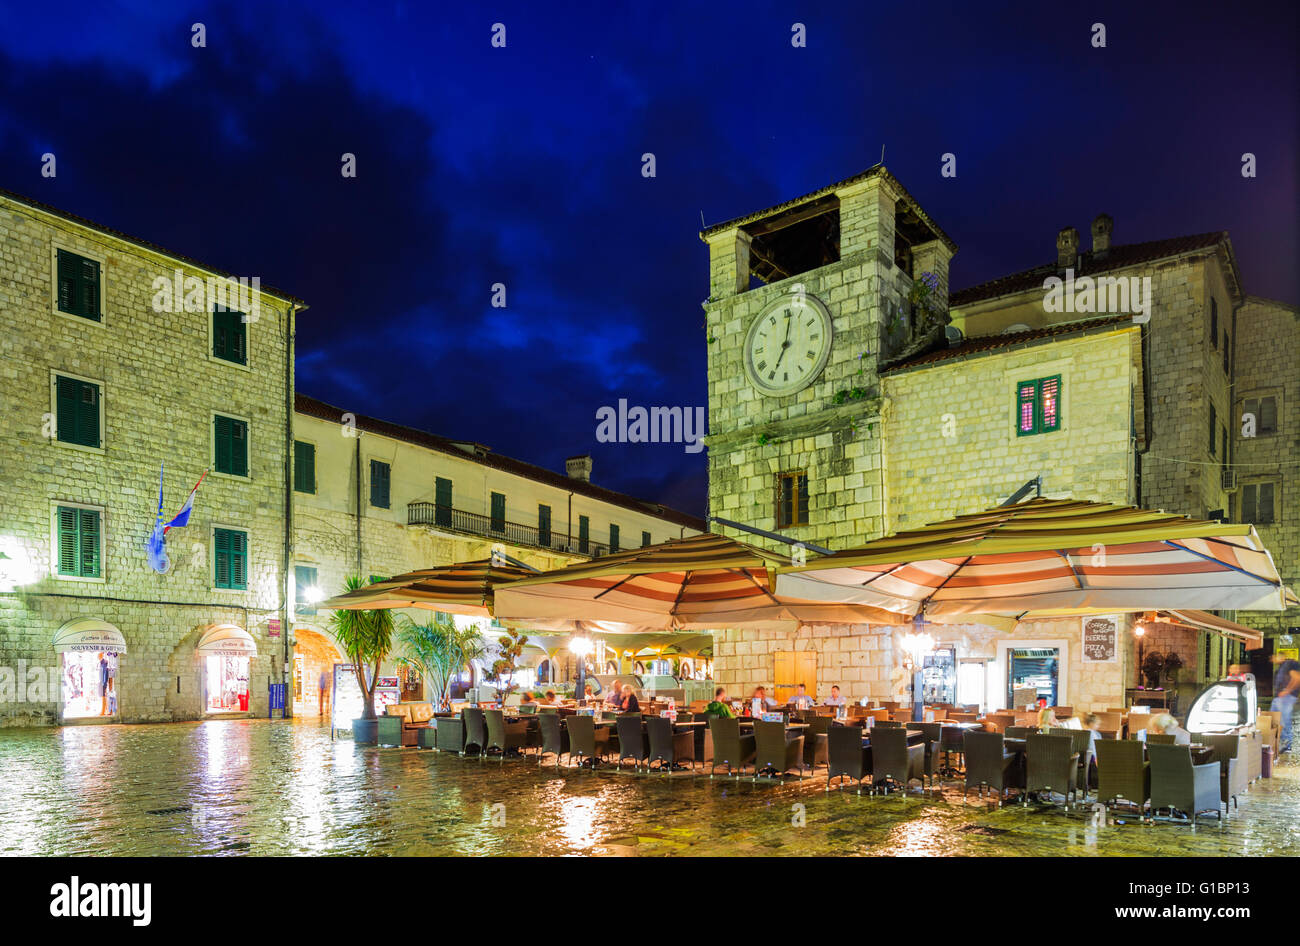 Europe, Balkans, Montenegro, Kotor, clock tower, Unesco site - Stock Image